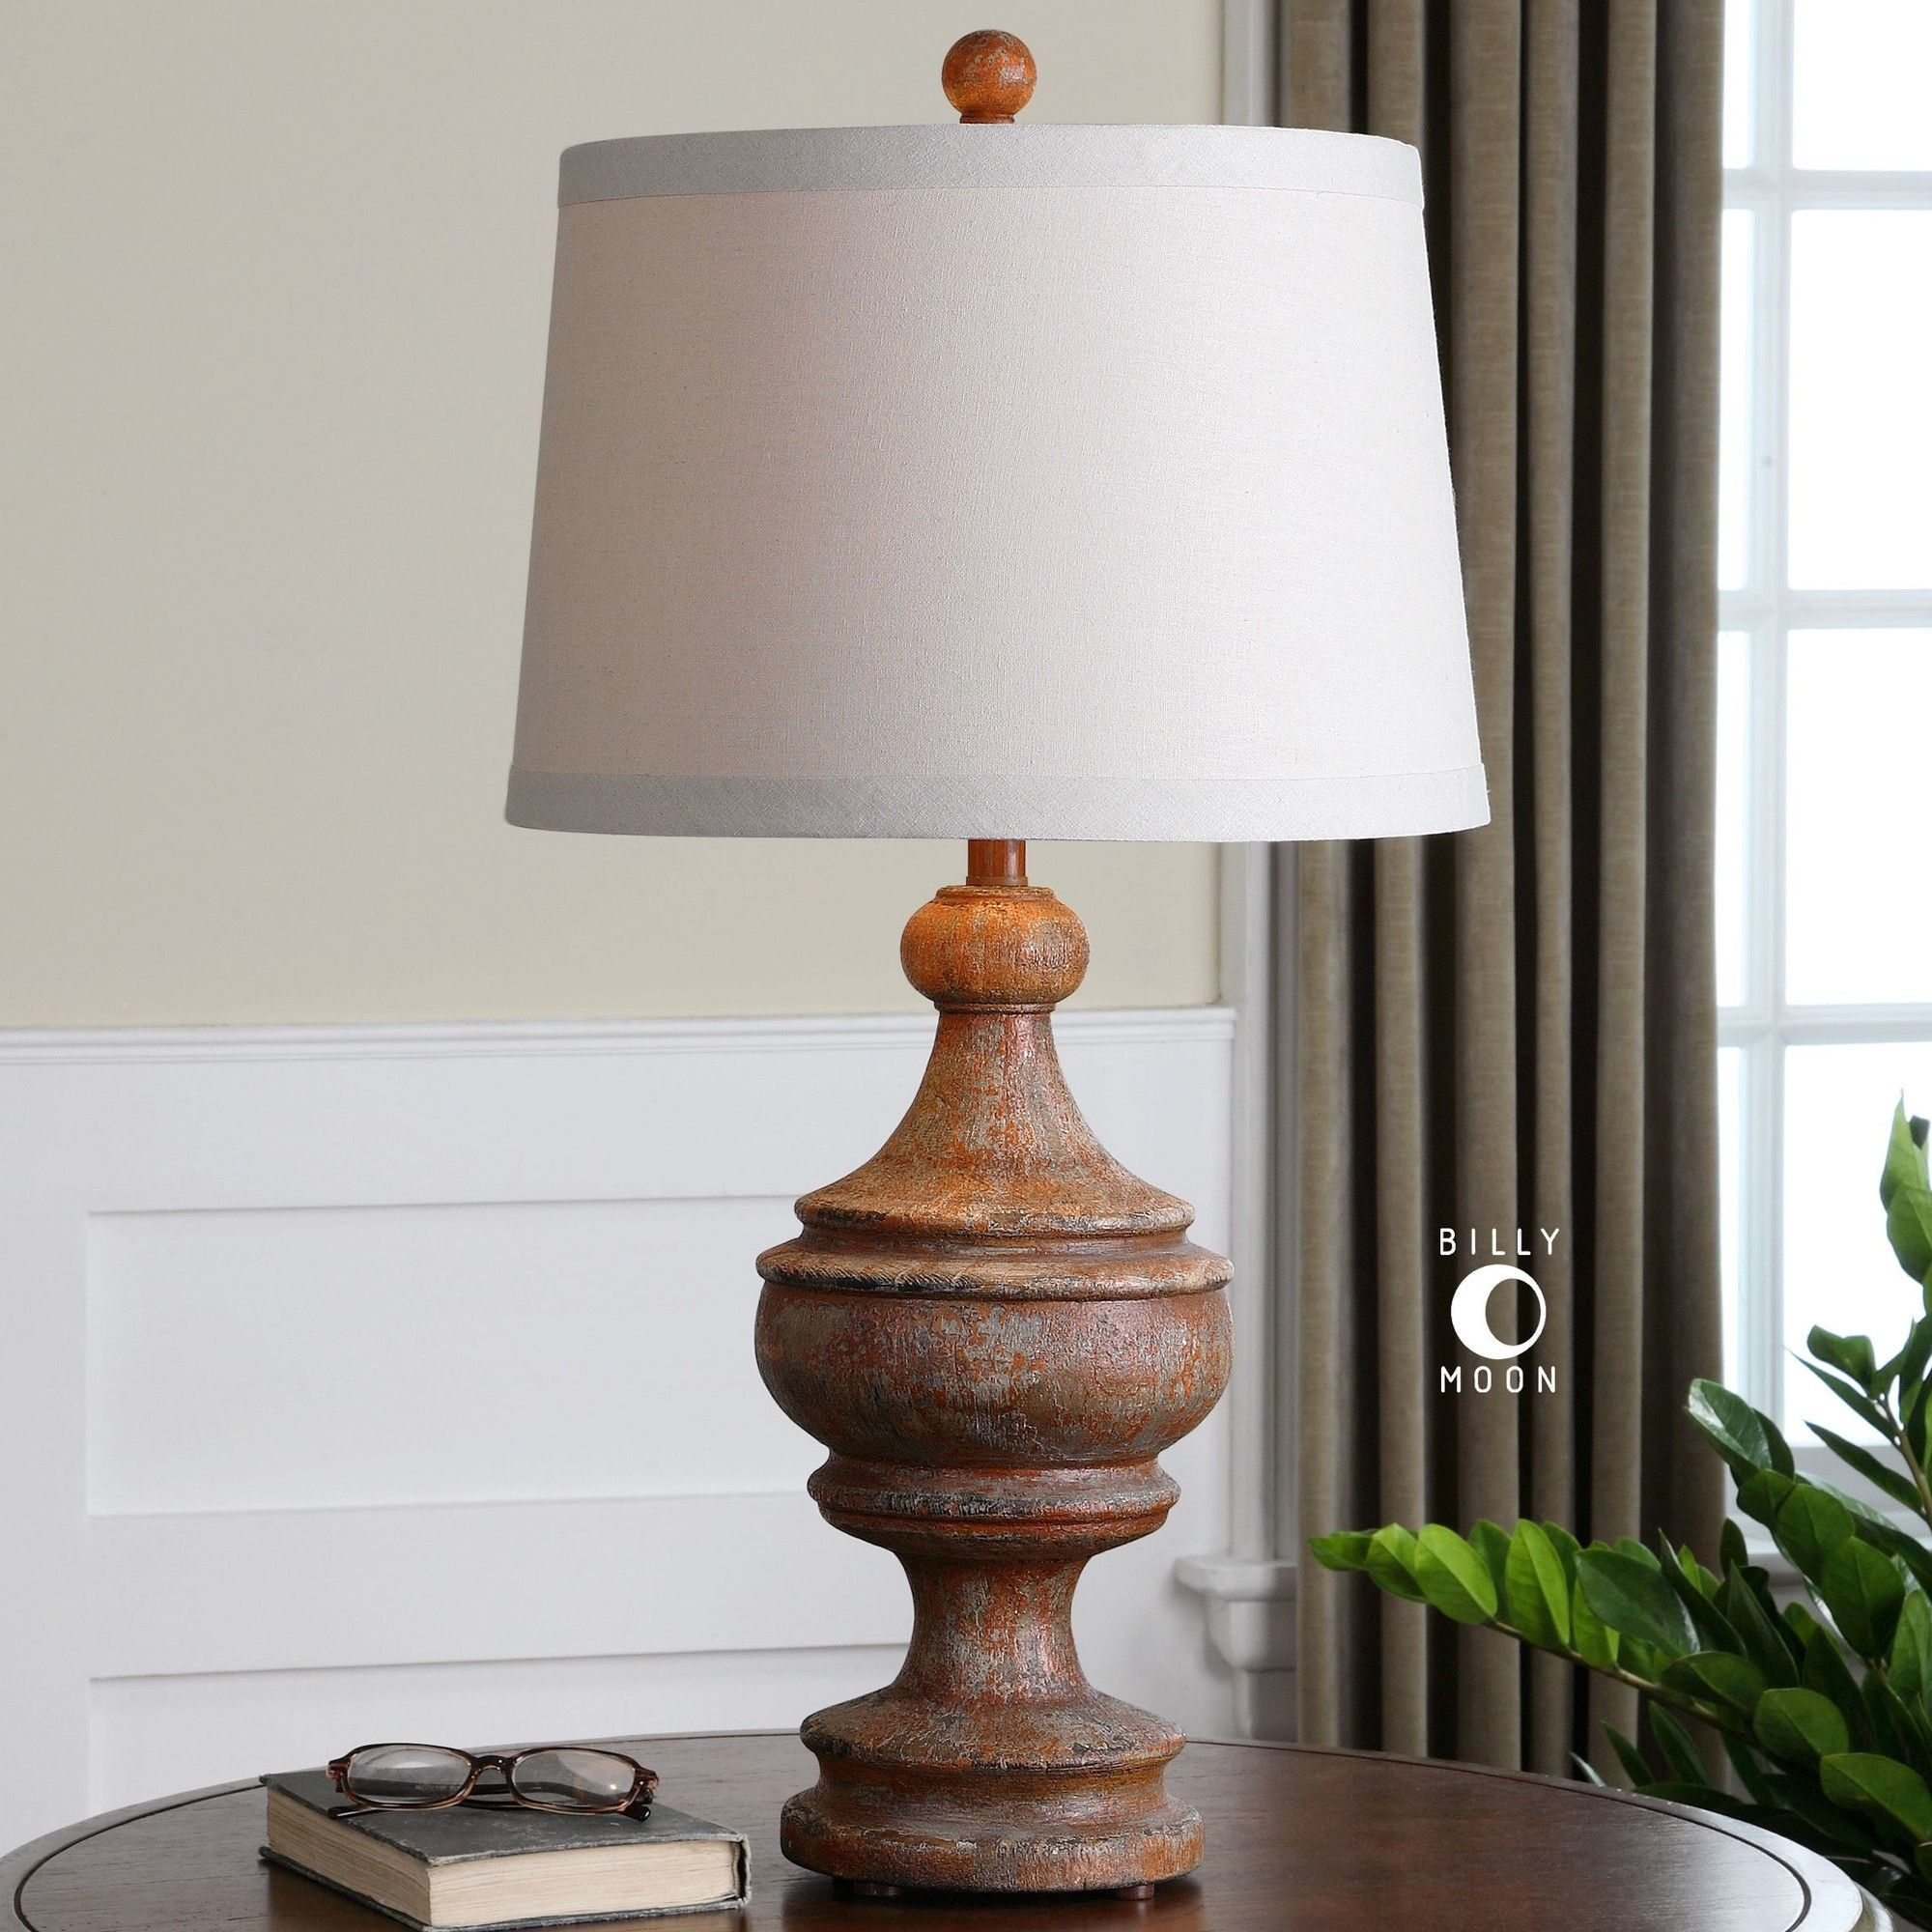 Uttermost Via Lata Solid Wood Table Lamp Base Finished In A Heavily Distressed Hand Painted Burnt Orange With Black Accents